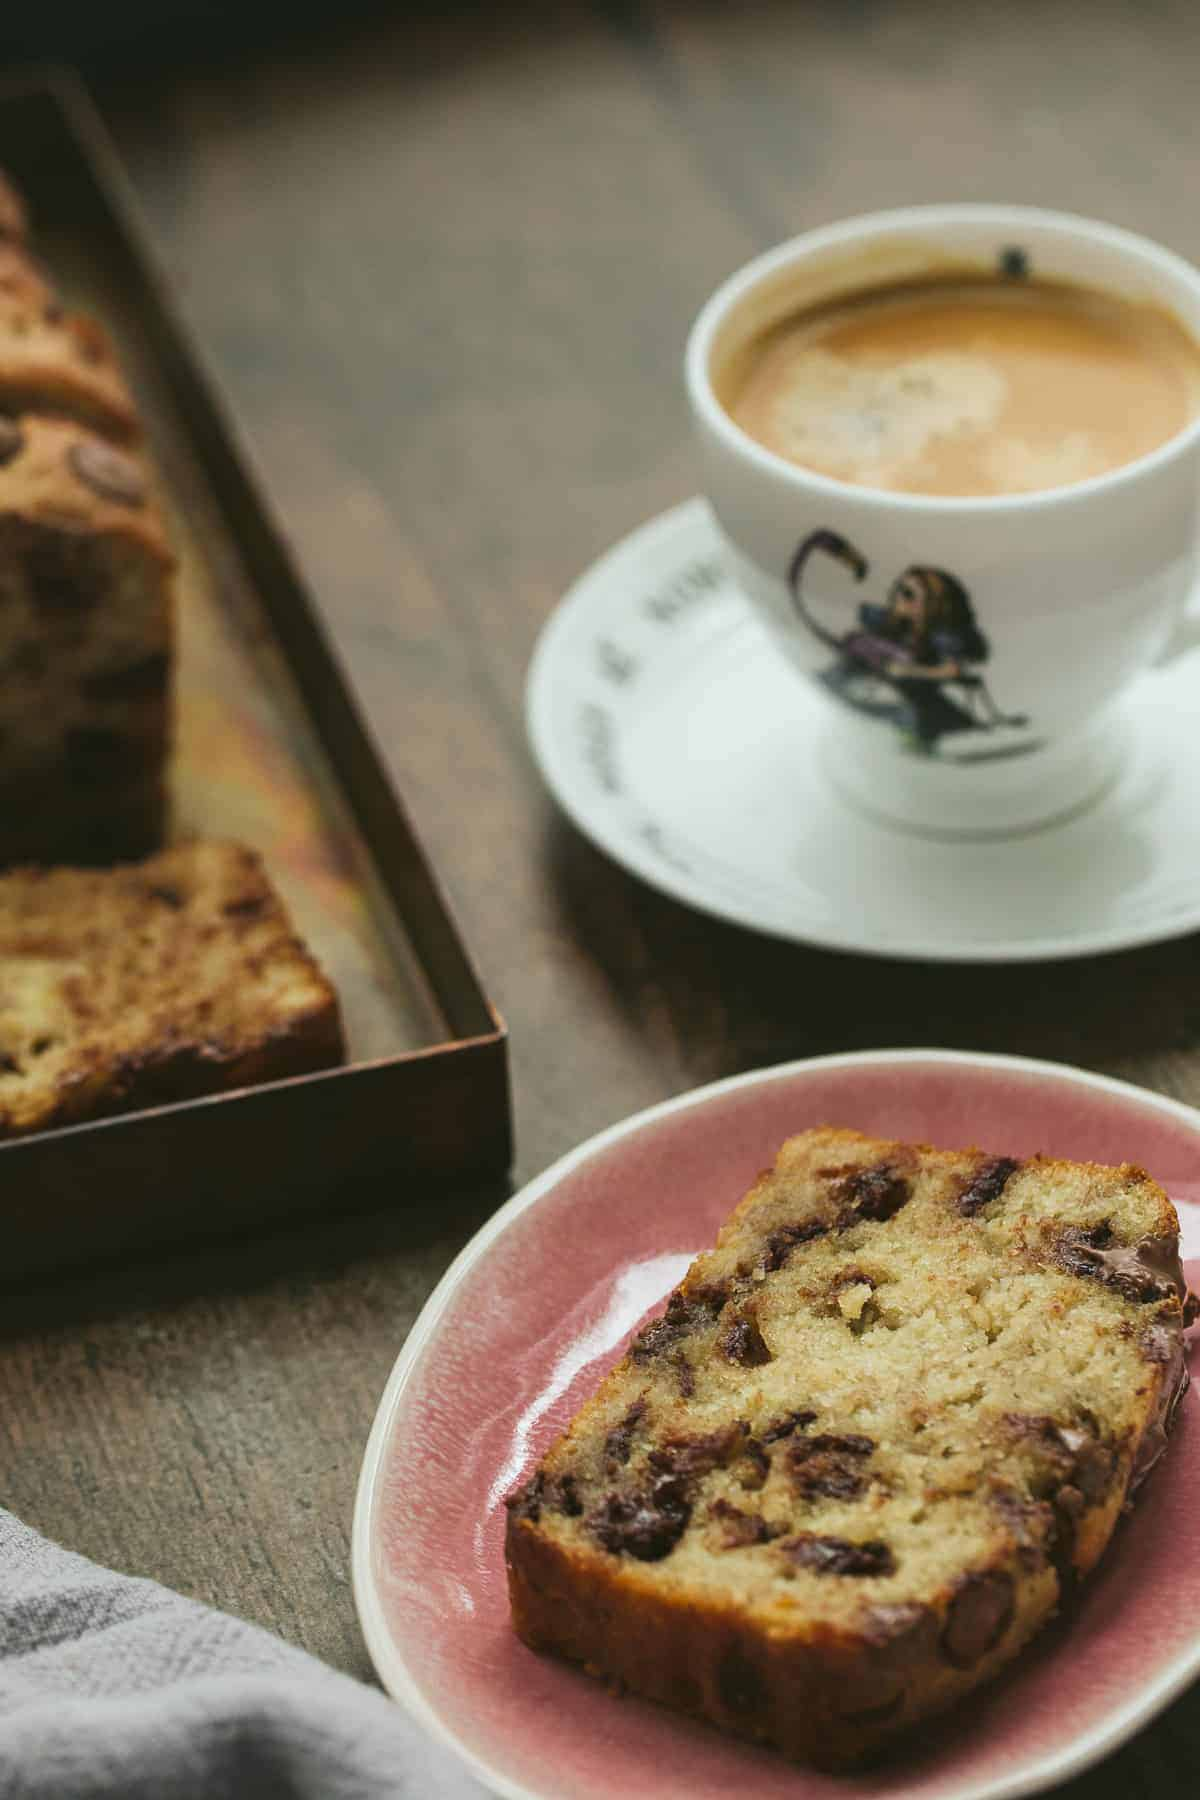 A slice of banana loaf on a pink plate. The slice has chocolate chips inside the bread. There is a cup of coffee in a decorative cup in the background.